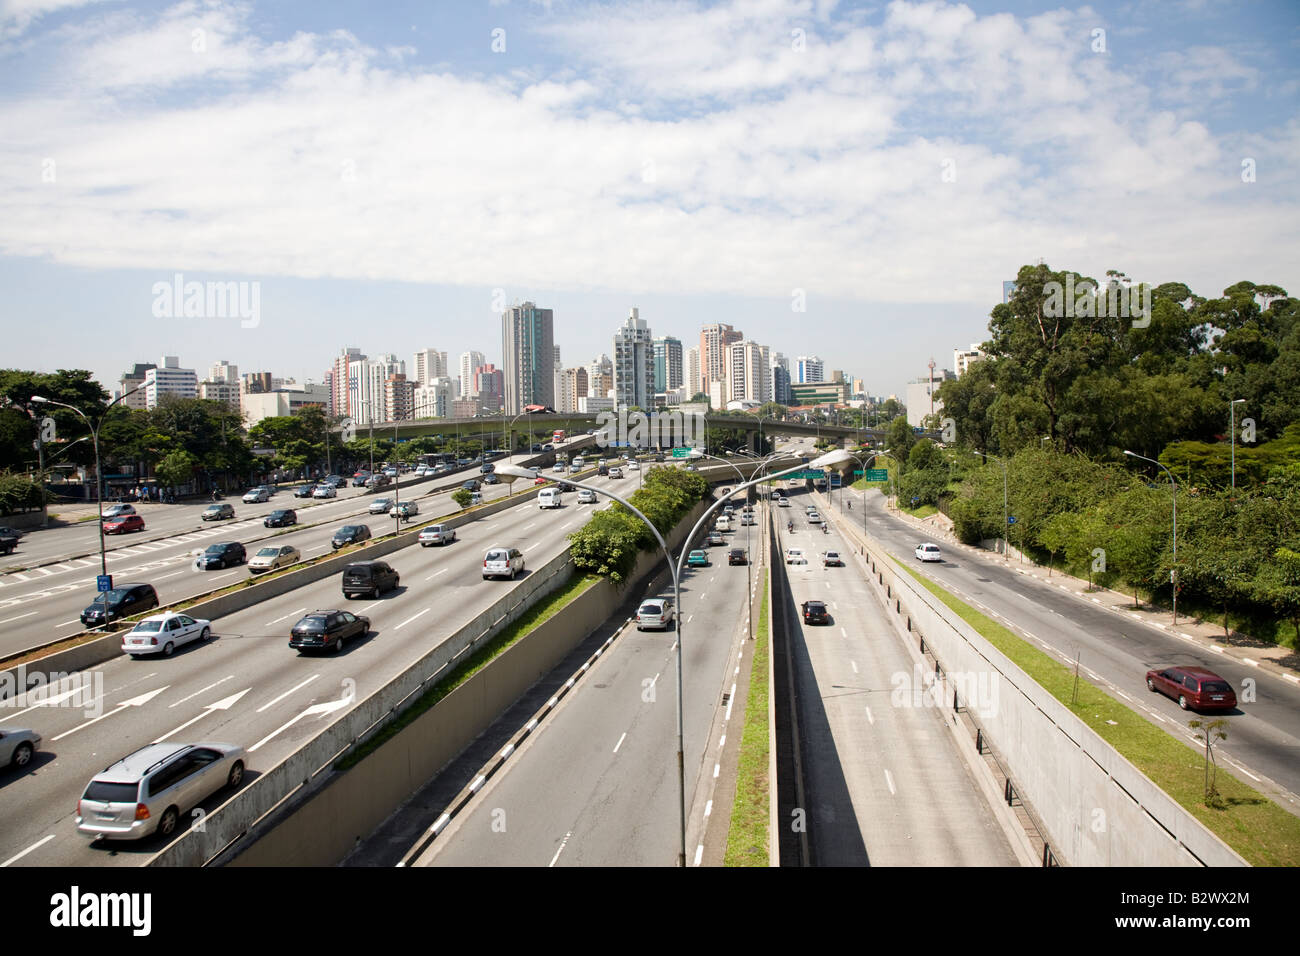 Sao Paulo, Brésil et skyline de trafic Photo Stock